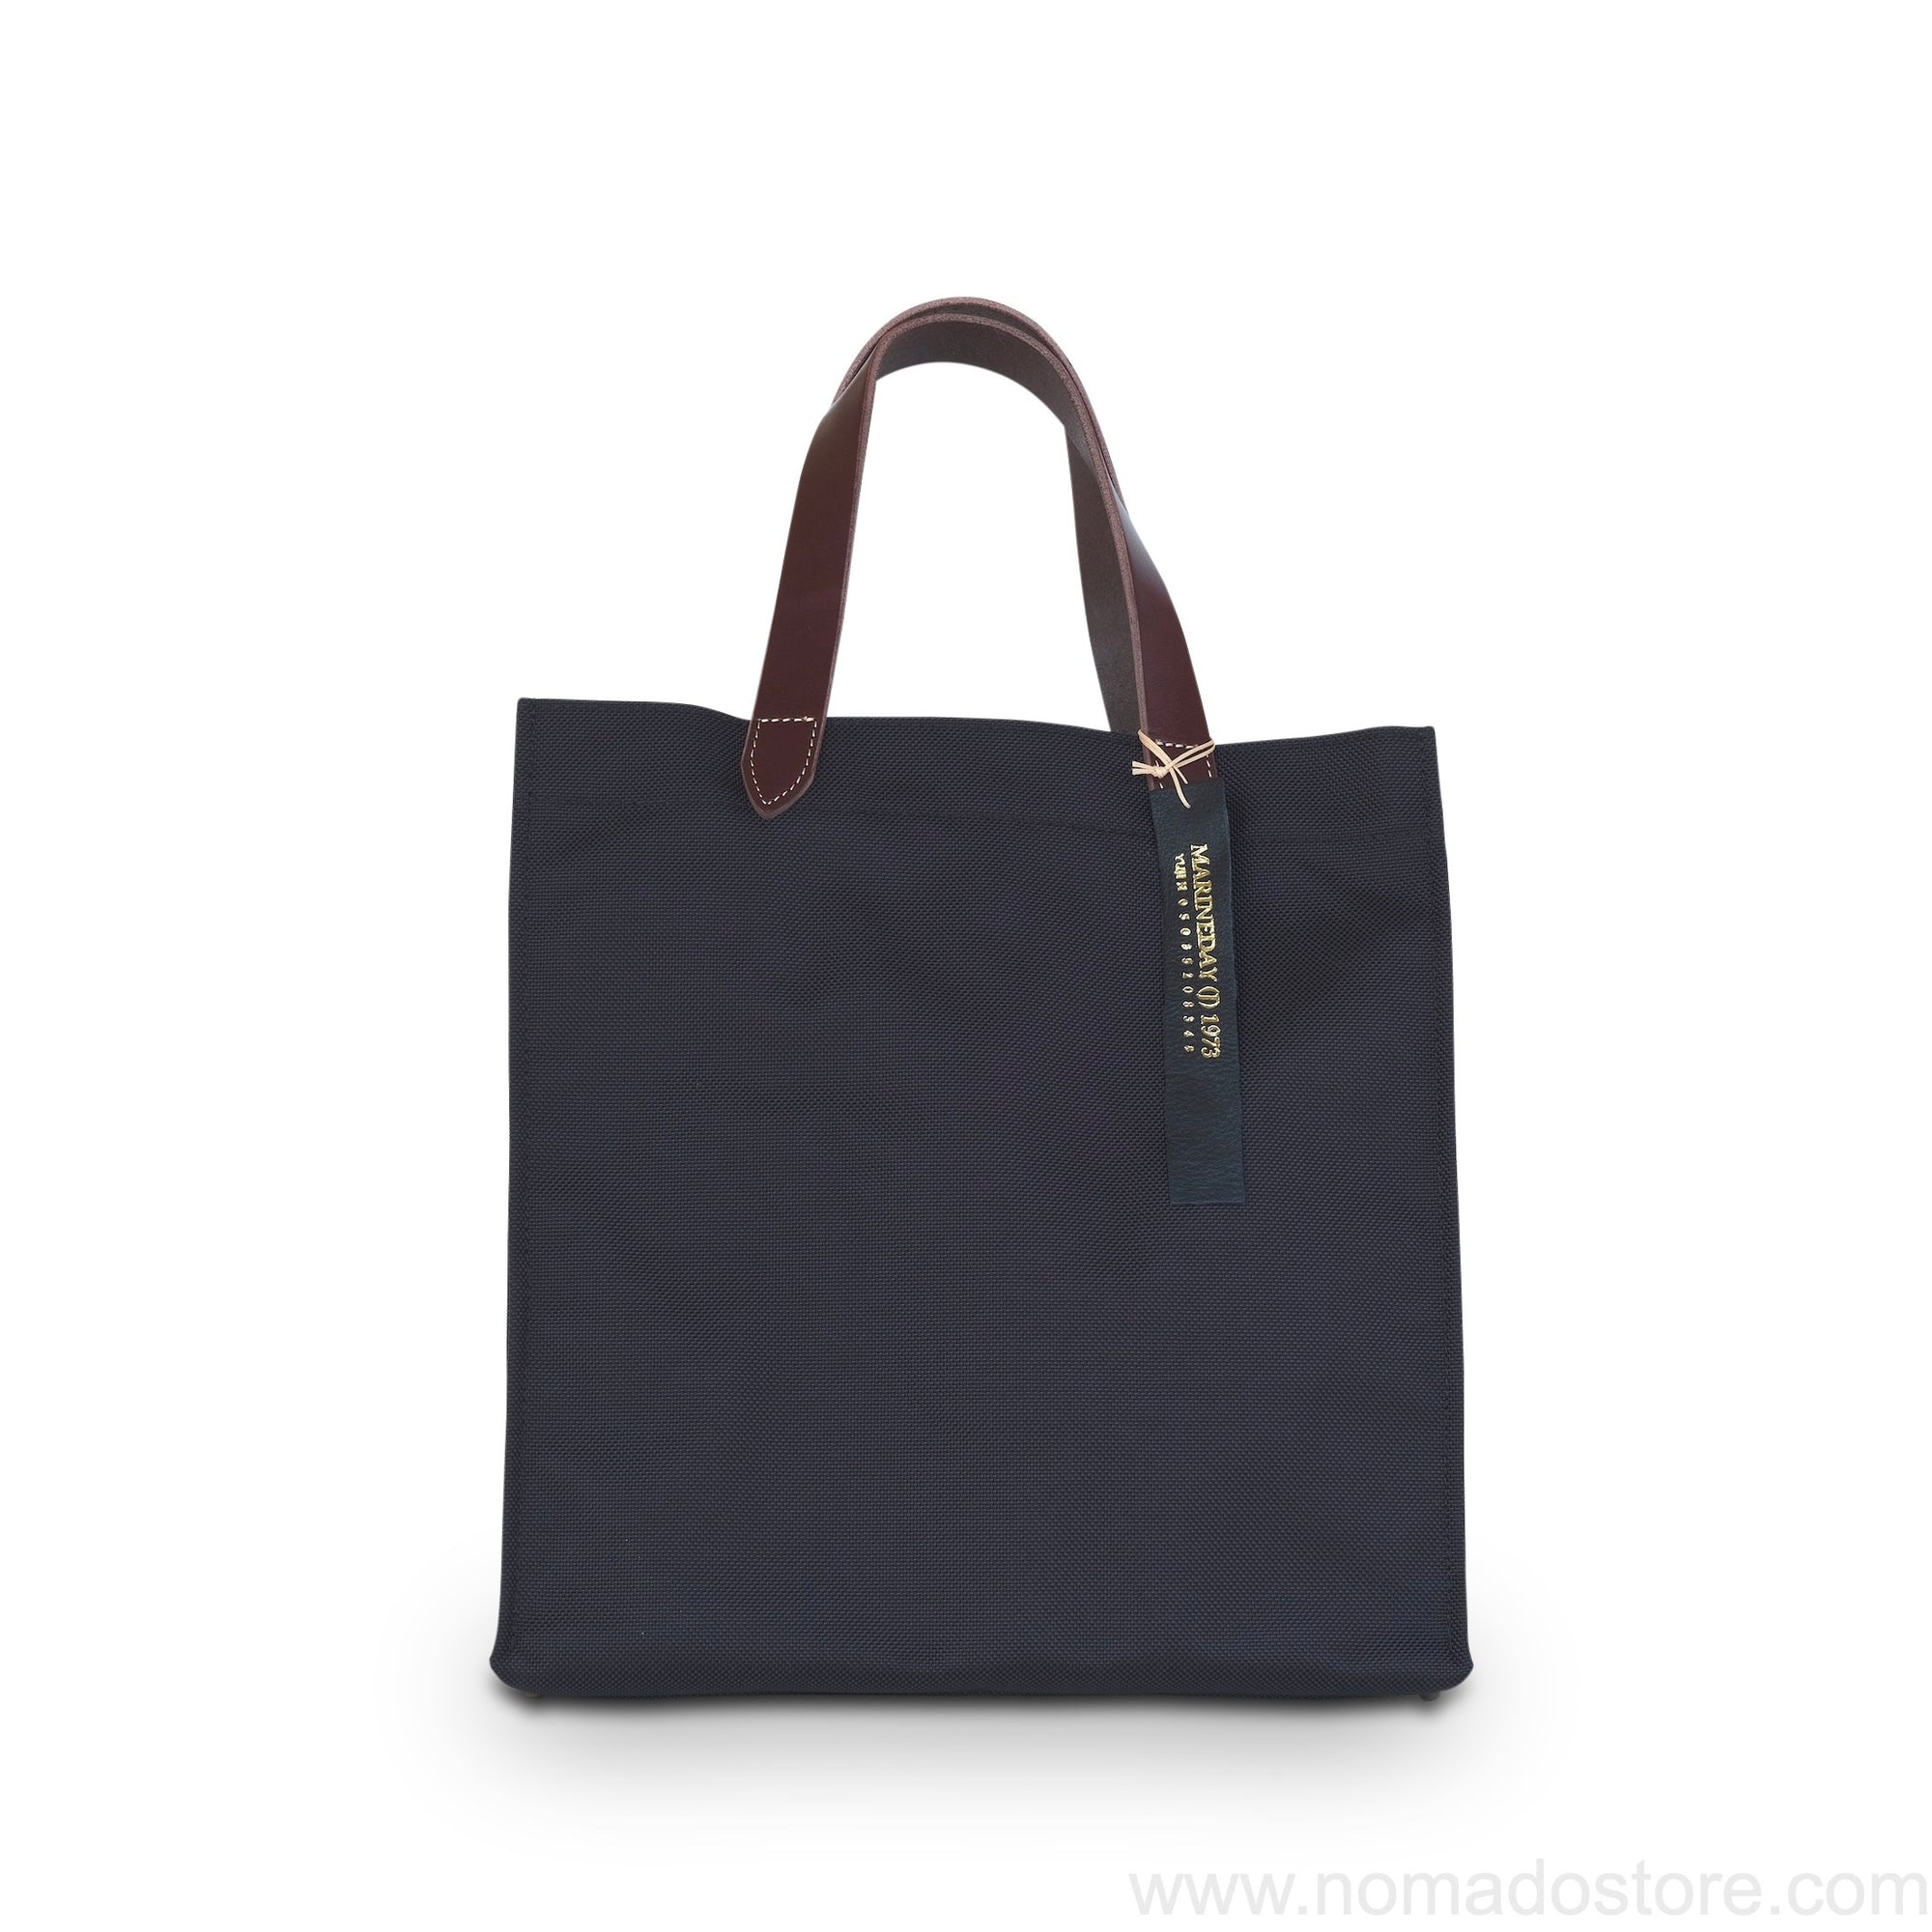 Marineday Flow 66 Nylon Tote Bag (Black/Choco) - NOMADO Store